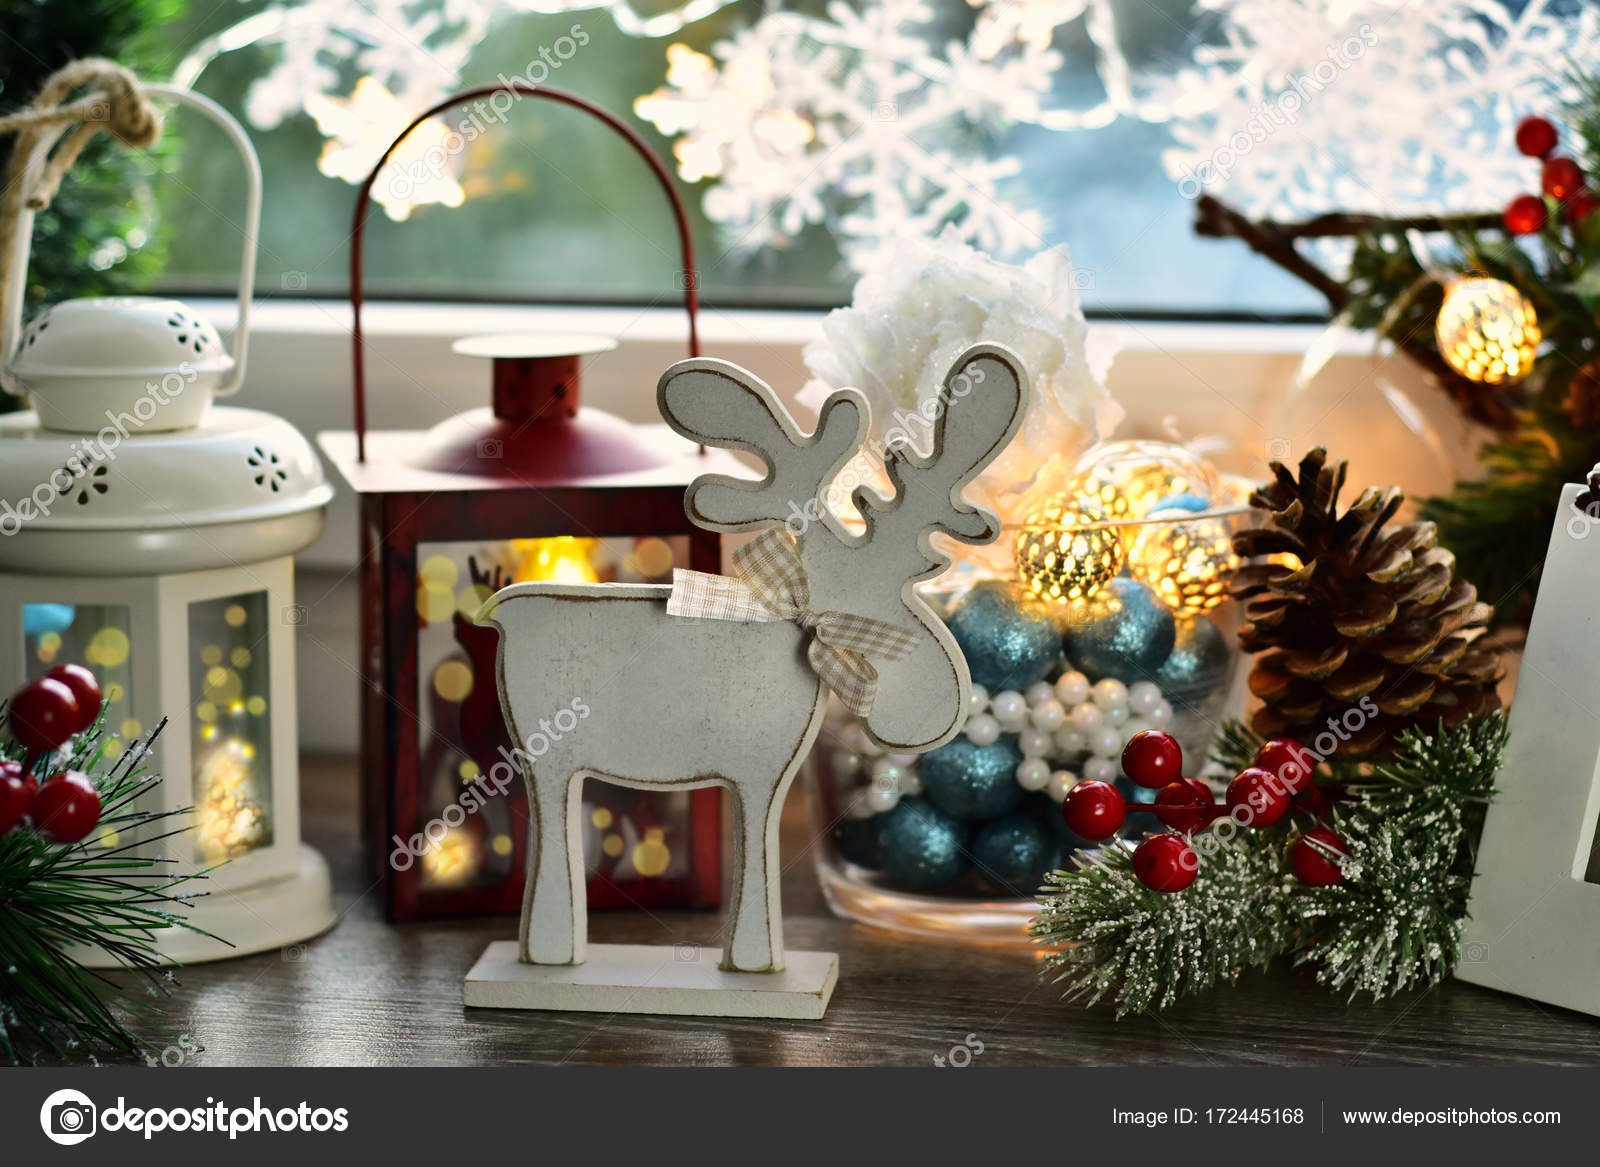 Christmas Window Decoration With Wooden Reindeer And Old Lantern Stock Photo Image By C Teresaterra 172445168